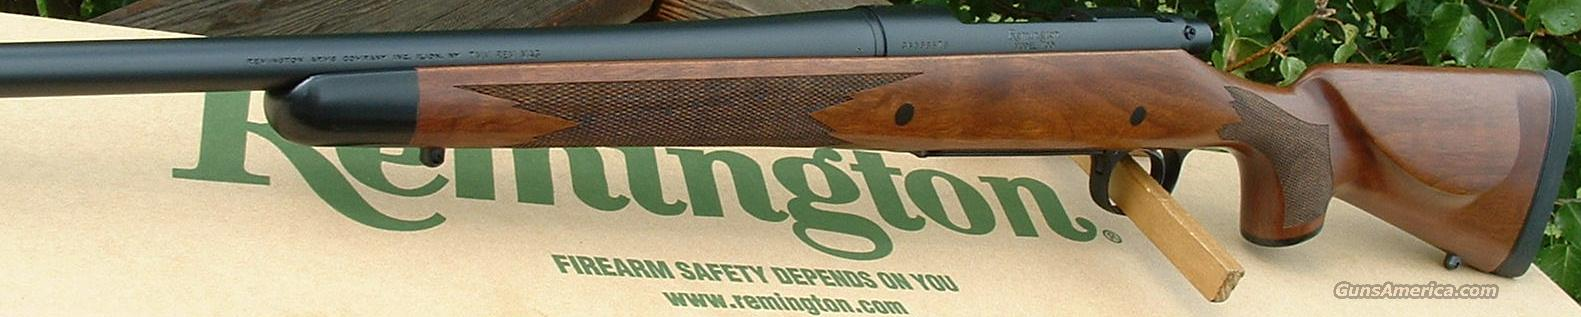 Remington 700 CDL 7mm Rem Mag    New!  Guns > Rifles > Remington Rifles - Modern